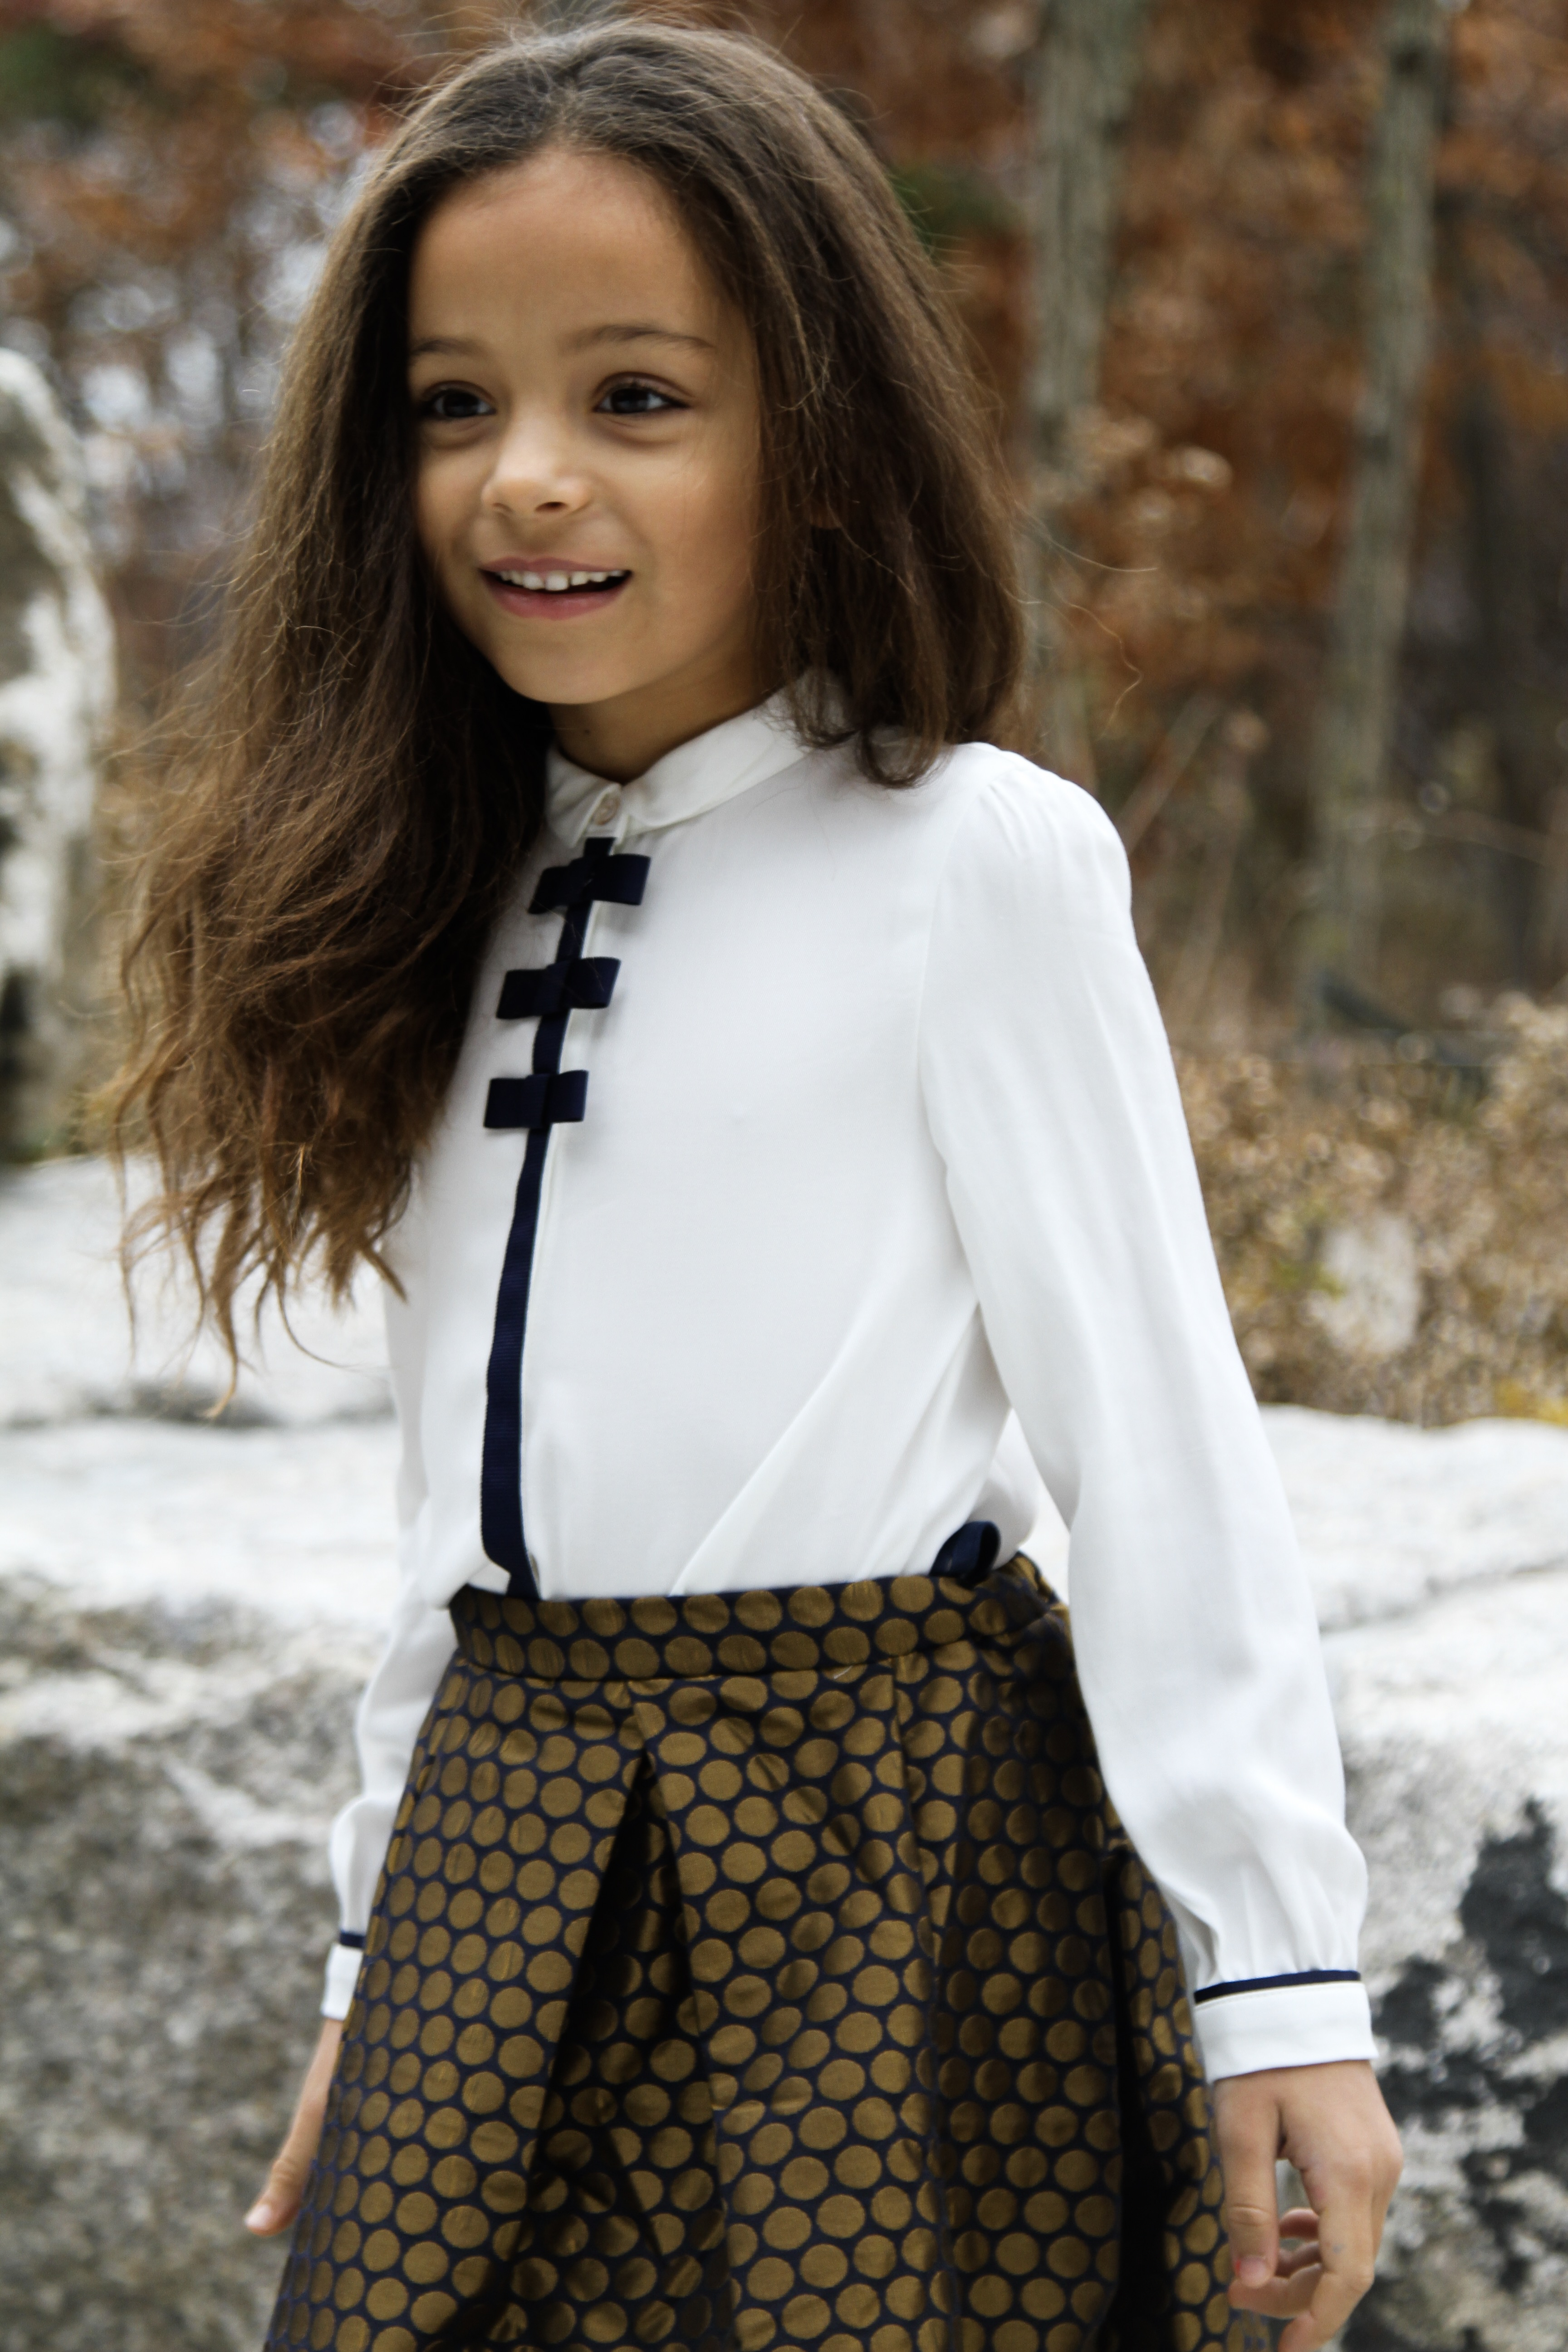 jpg4 Fashion-Blogger-Sai-De-Silva-And-Daughter-London-Scout-Talk-Two-Holiday-Looks-For-Every-Type-Of-Party. jpg4